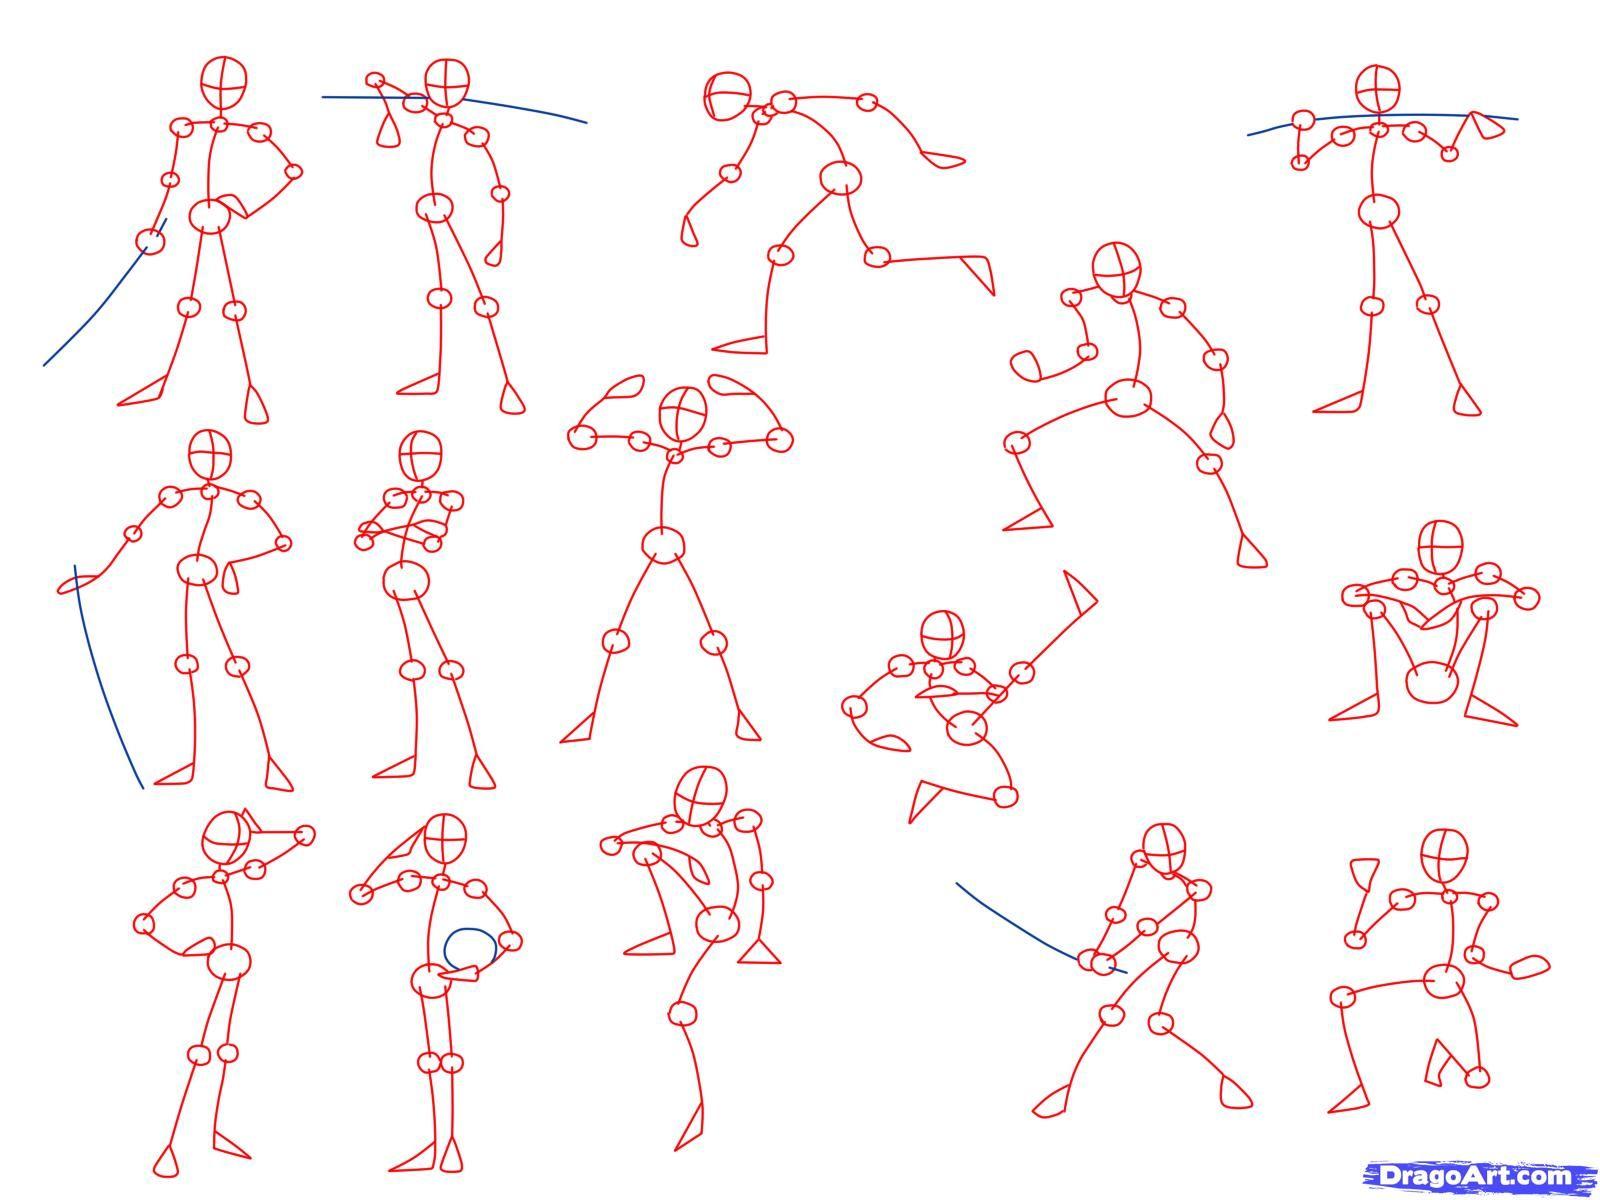 drawing poses | Draw Anime Poses, Step by Step, Anatomy, People ...